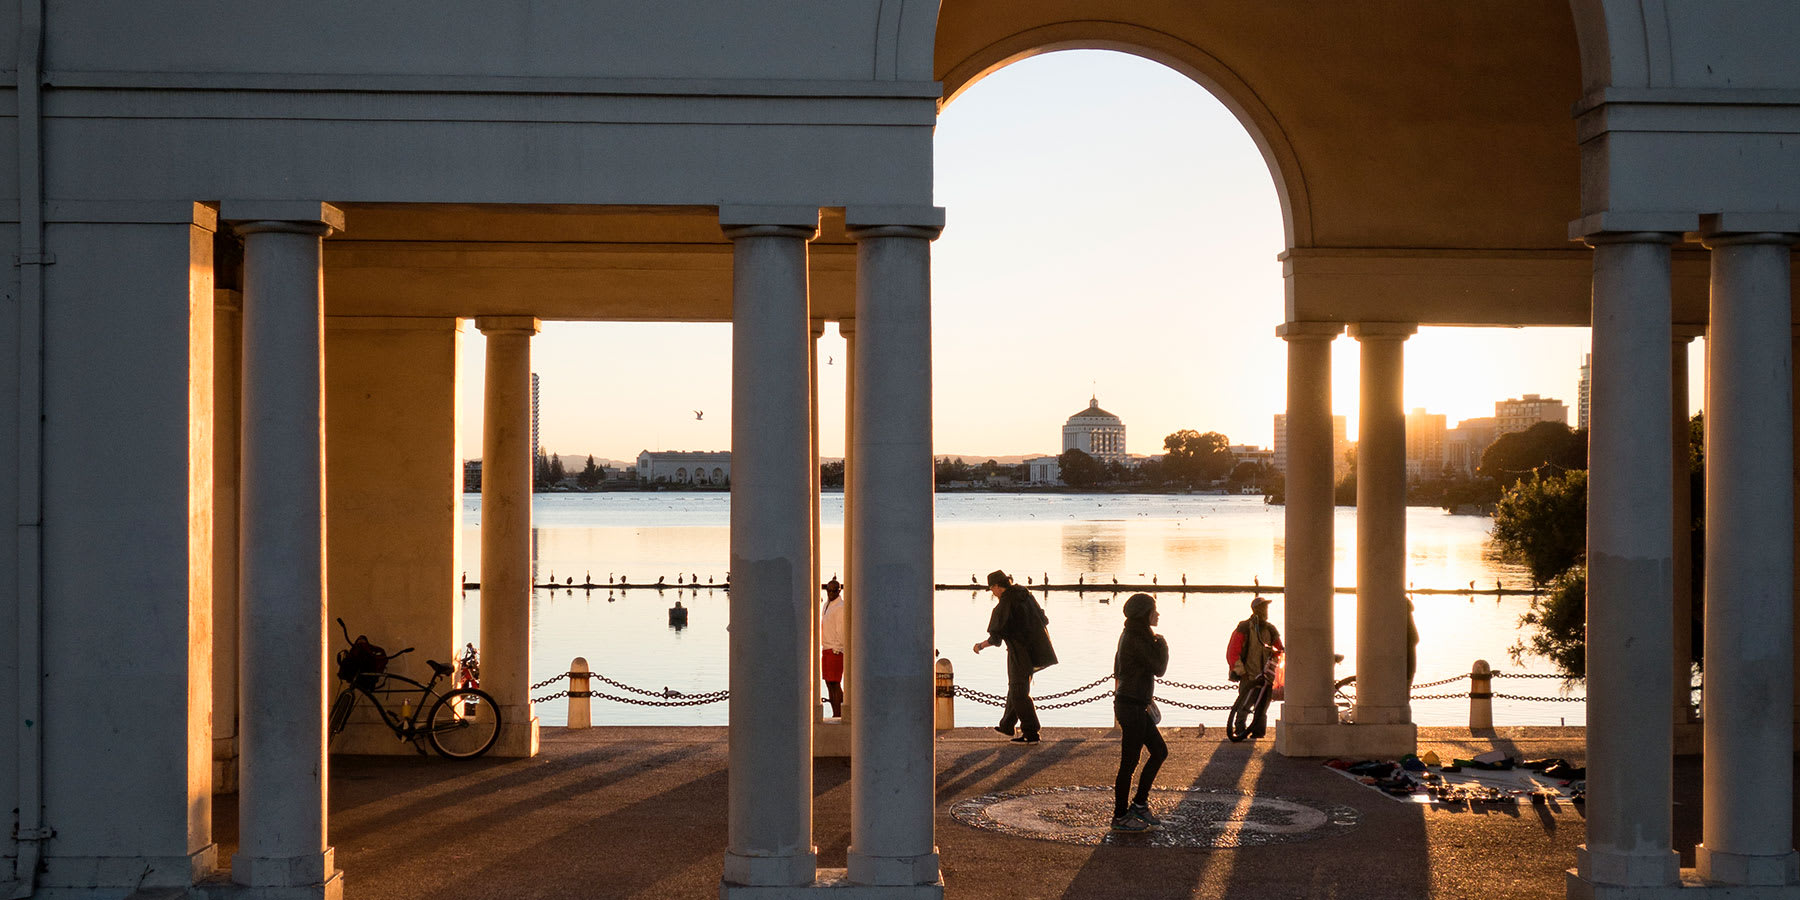 People walking through arch next to Lake Merritt at sunset